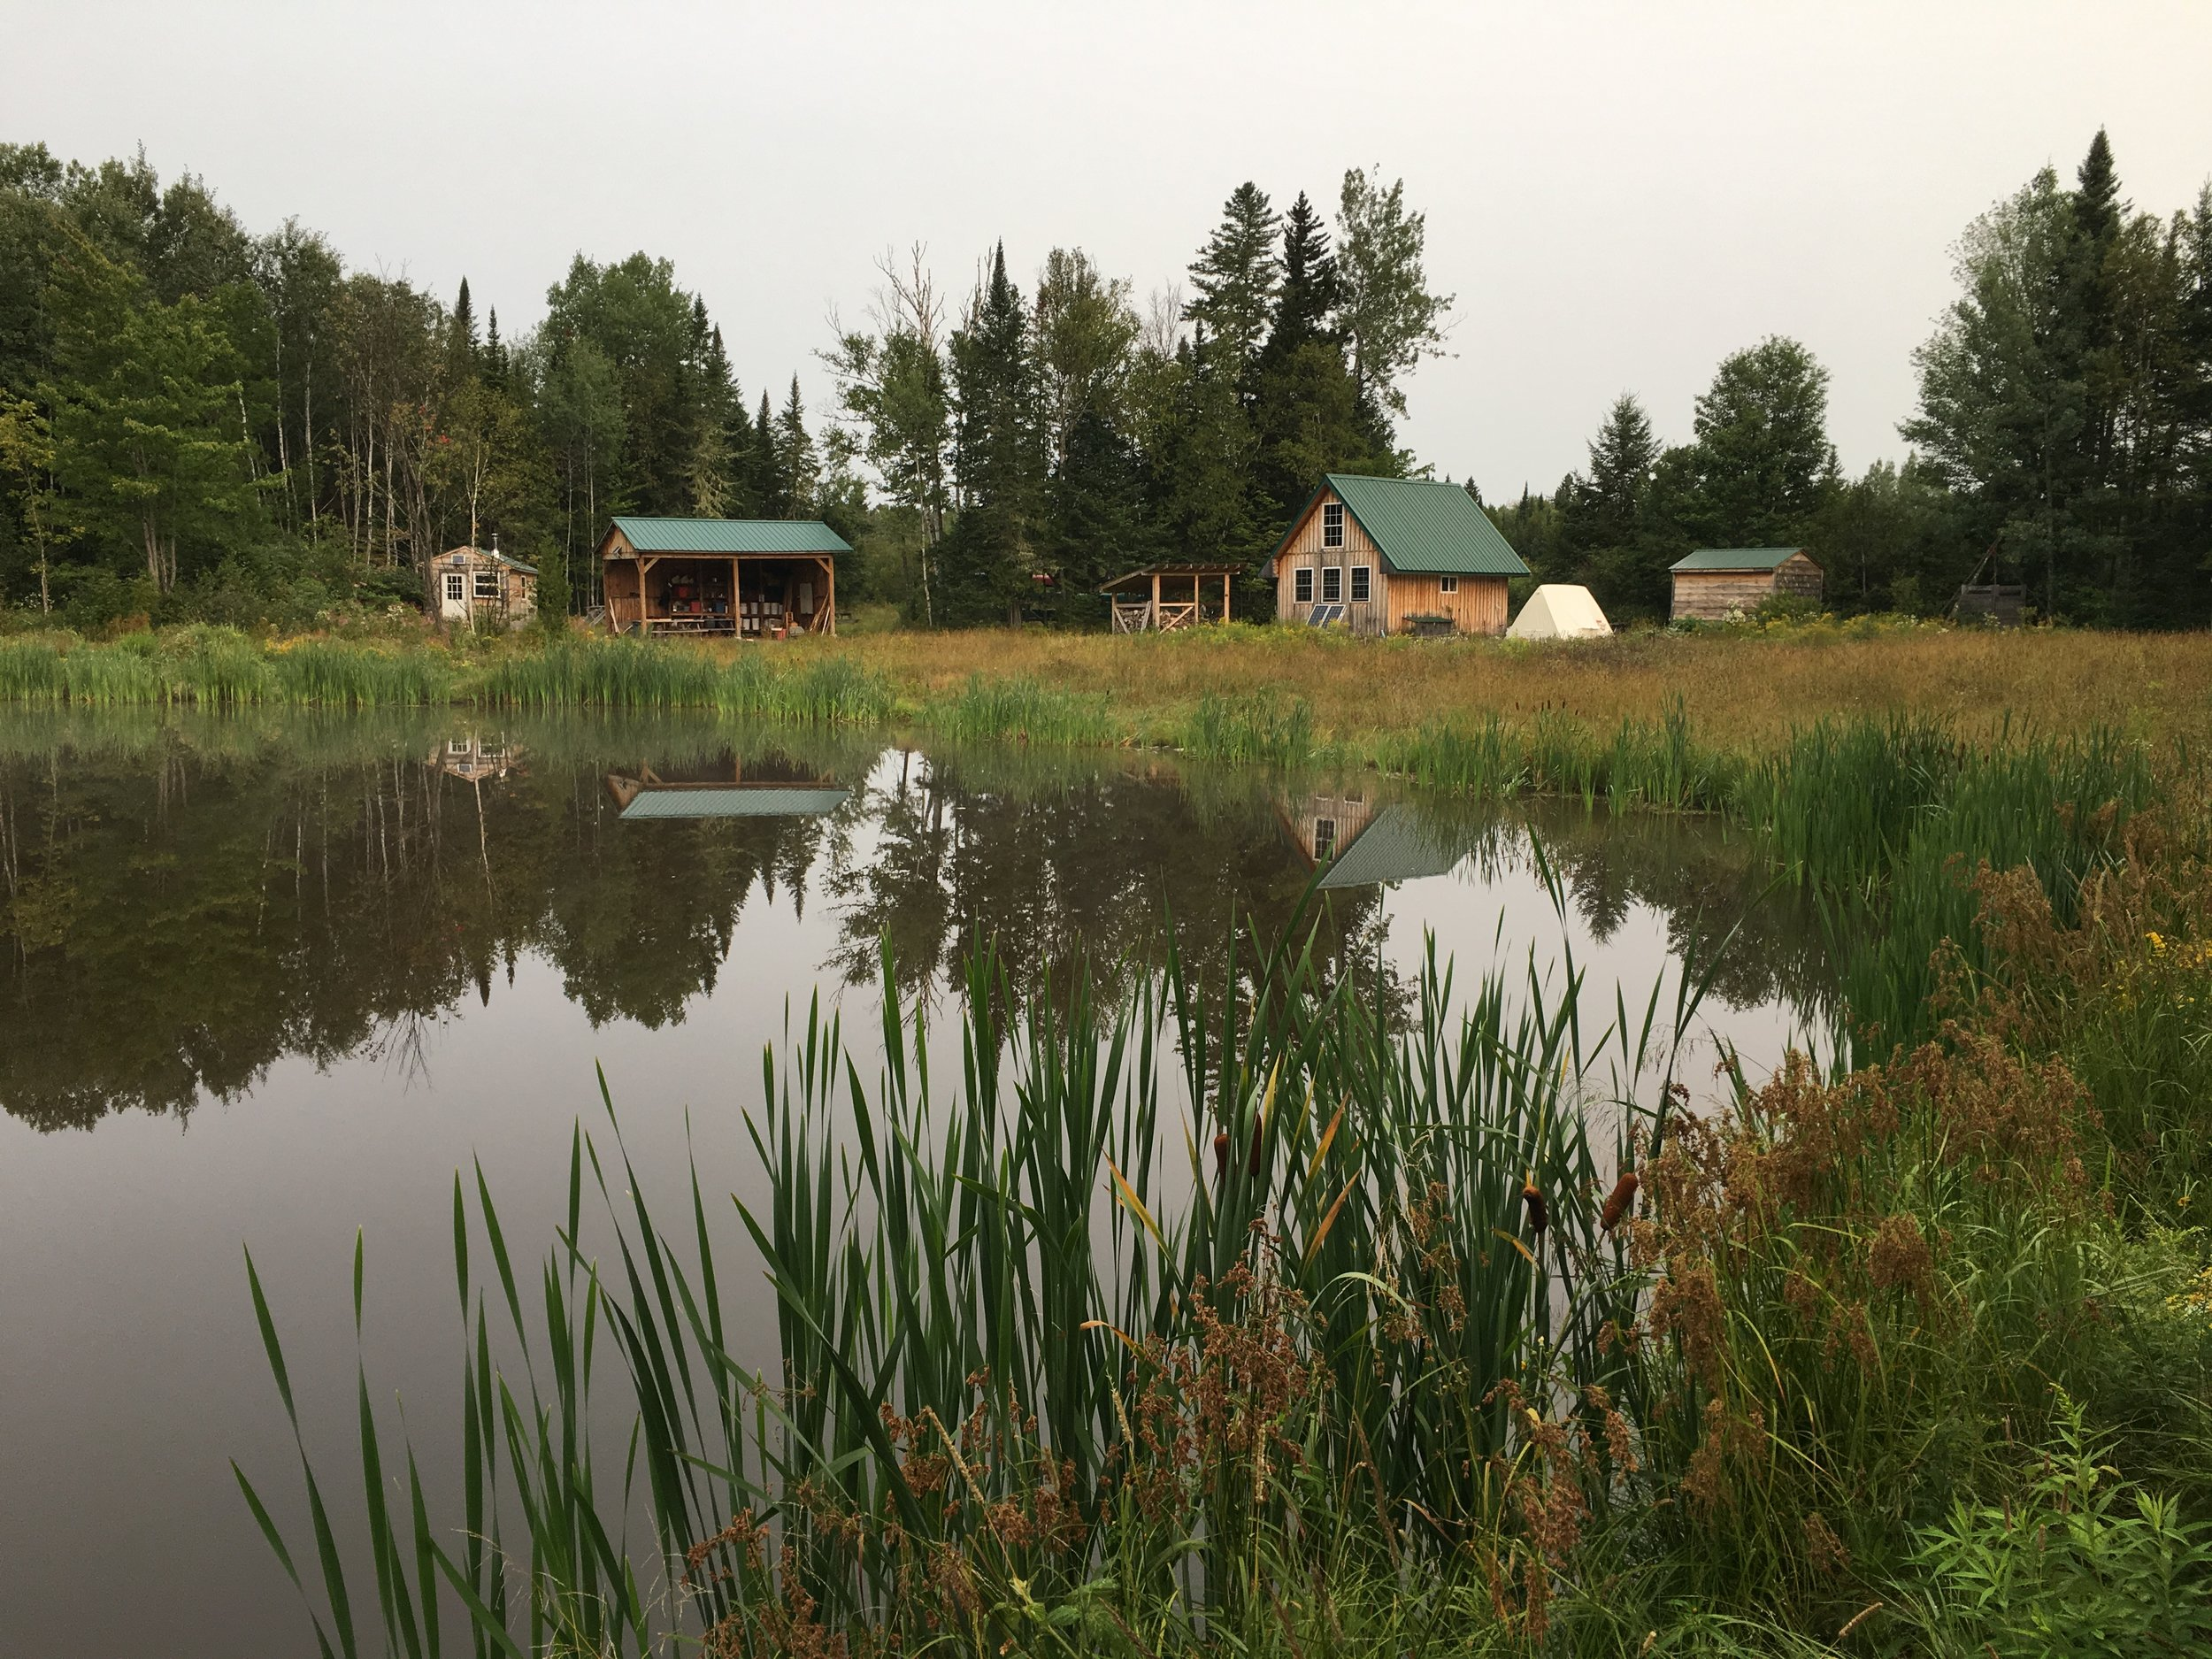 The pond behind the guide shack is stocked with fish and home to frogs and water bugs.